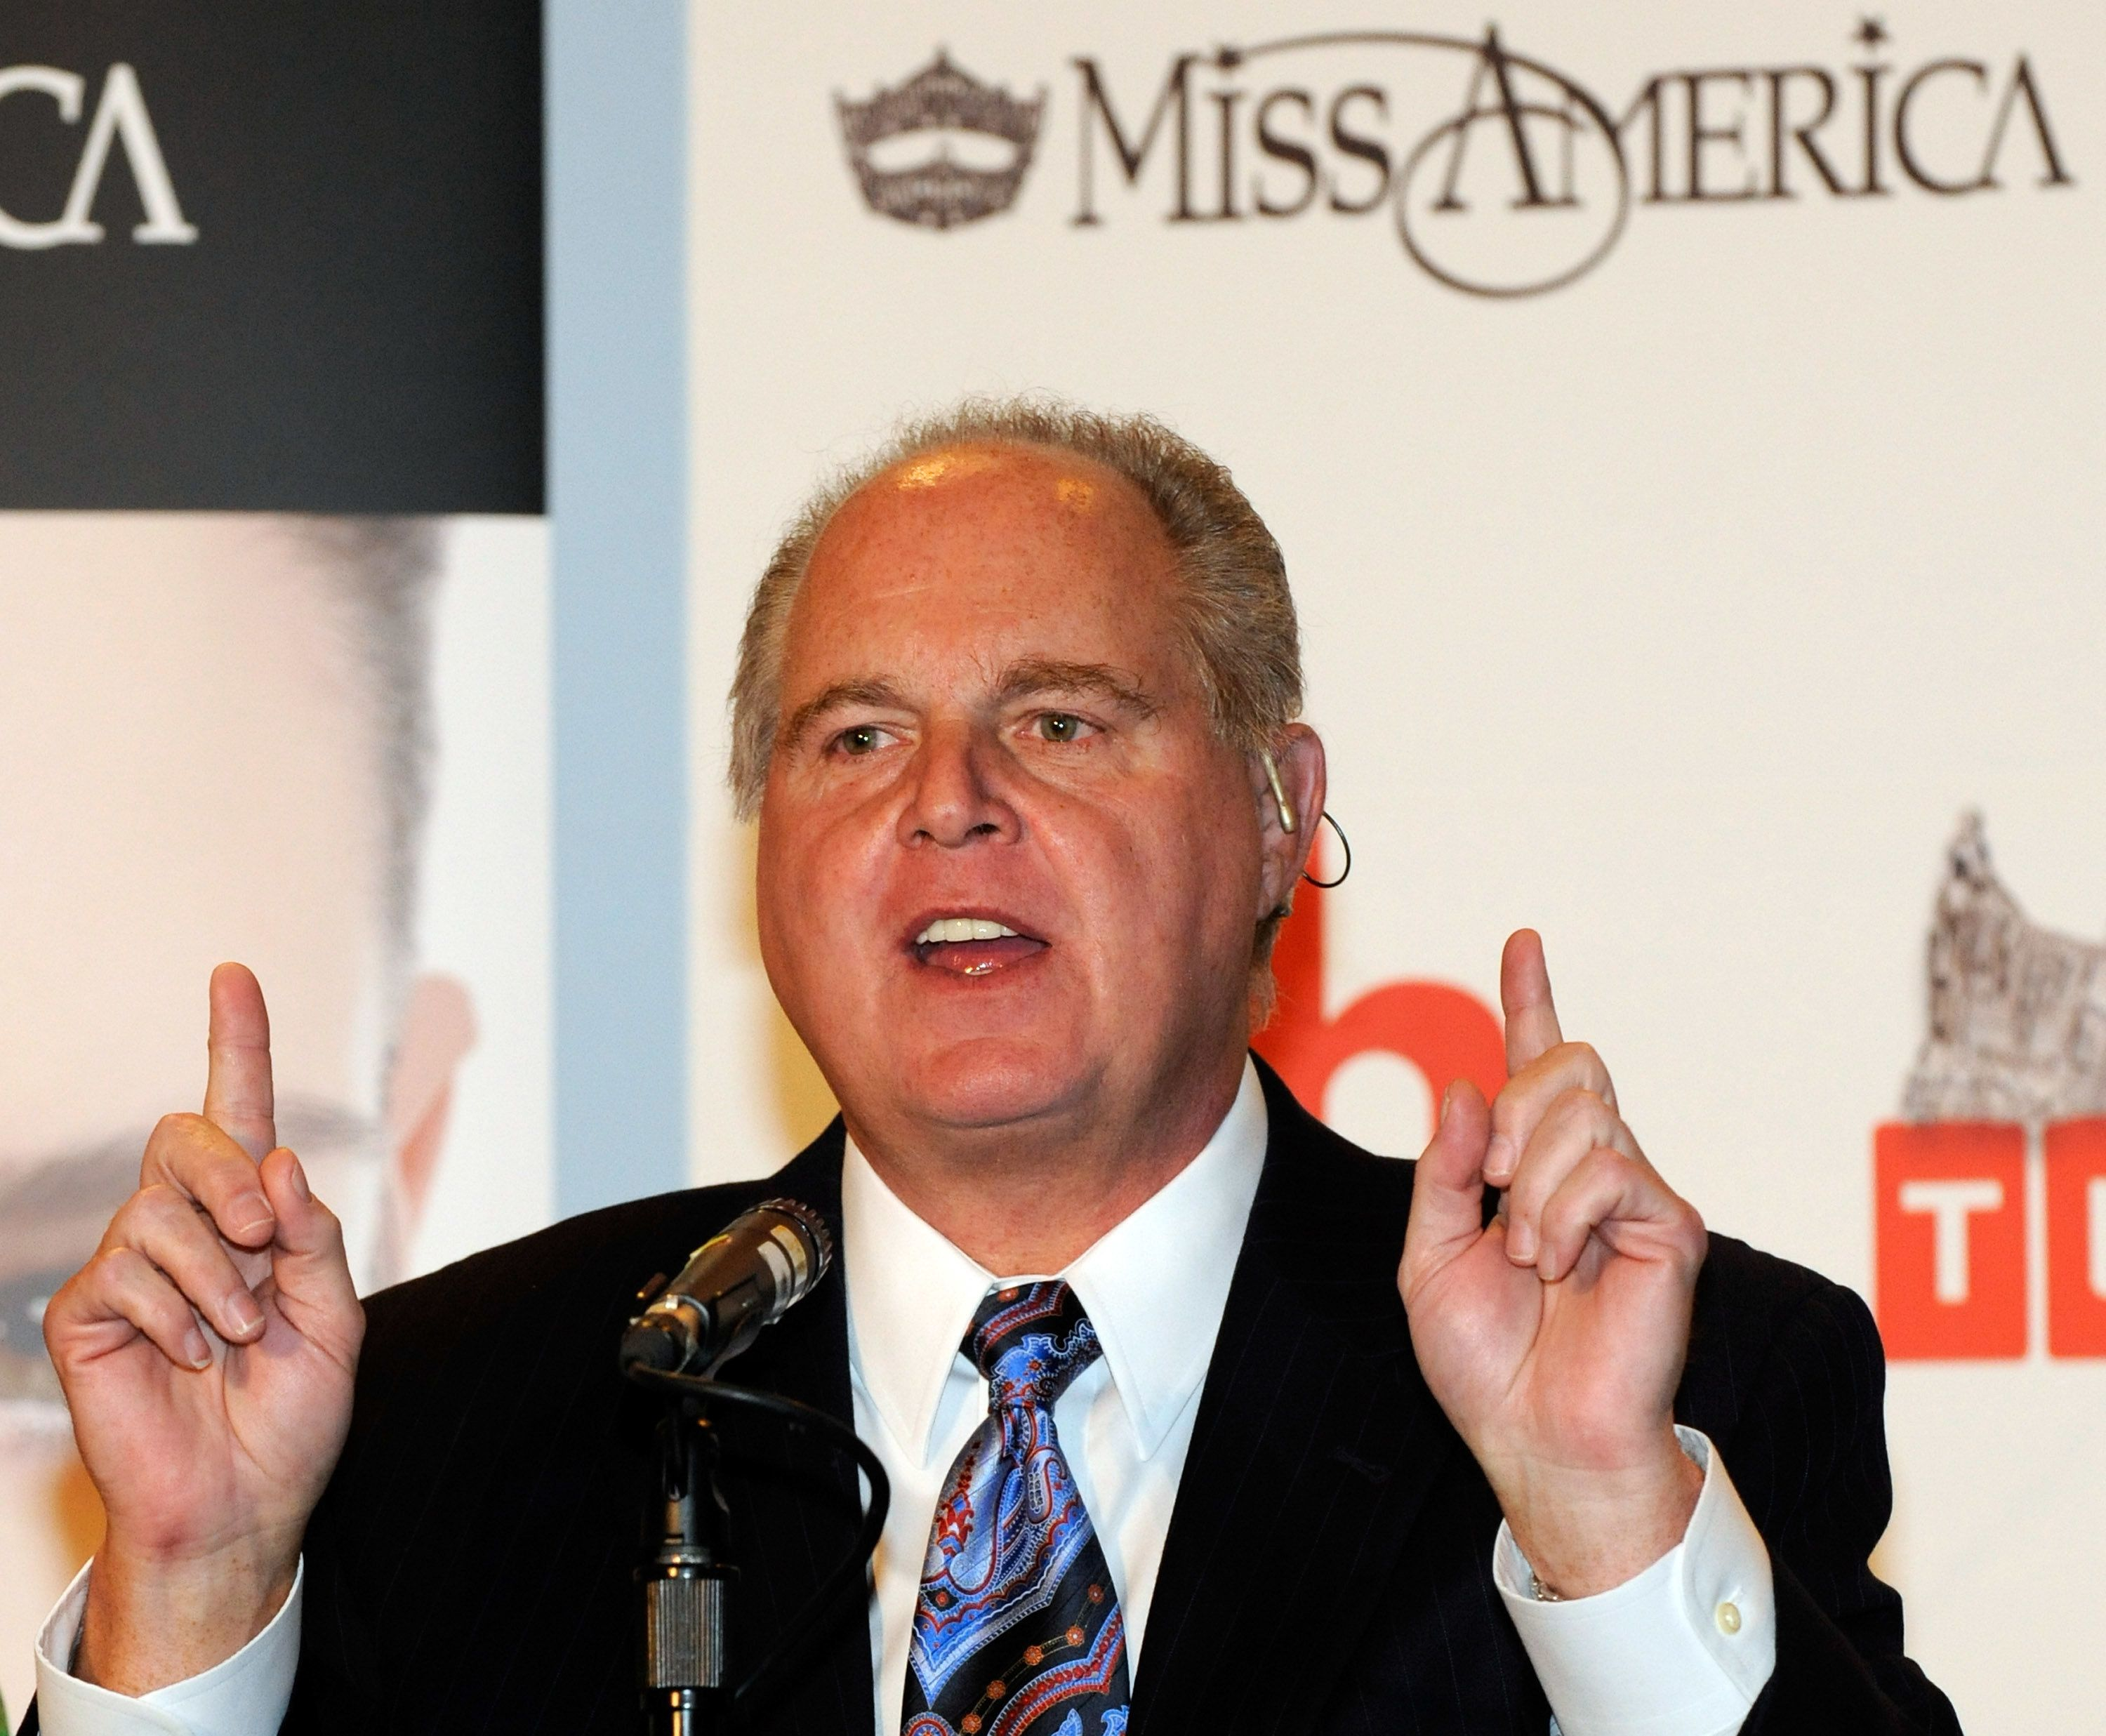 LAS VEGAS - JANUARY 27:  Radio talk show host and conservative commentator Rush Limbaugh, one of the judges for the 2010 Miss America Pageant, speaks during a news conference for judges at the Planet Hollywood Resort & Casino January 27, 2010 in Las Vegas, Nevada. The pageant will be held at the resort on January 30, 2010.  (Photo by Ethan Miller/Getty Images)